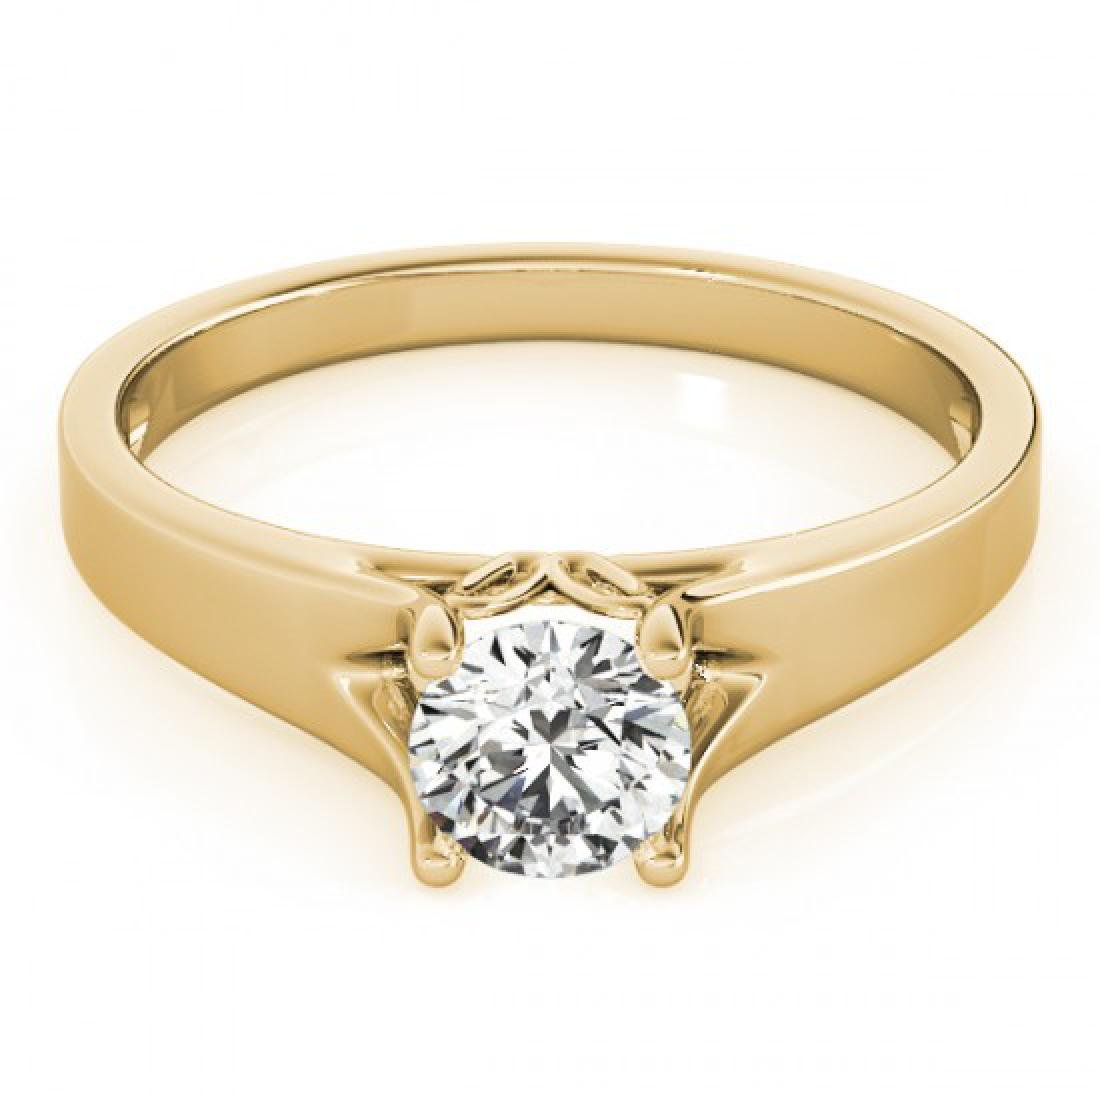 1.5 CTW Certified VS/SI Diamond Solitaire Ring 18K